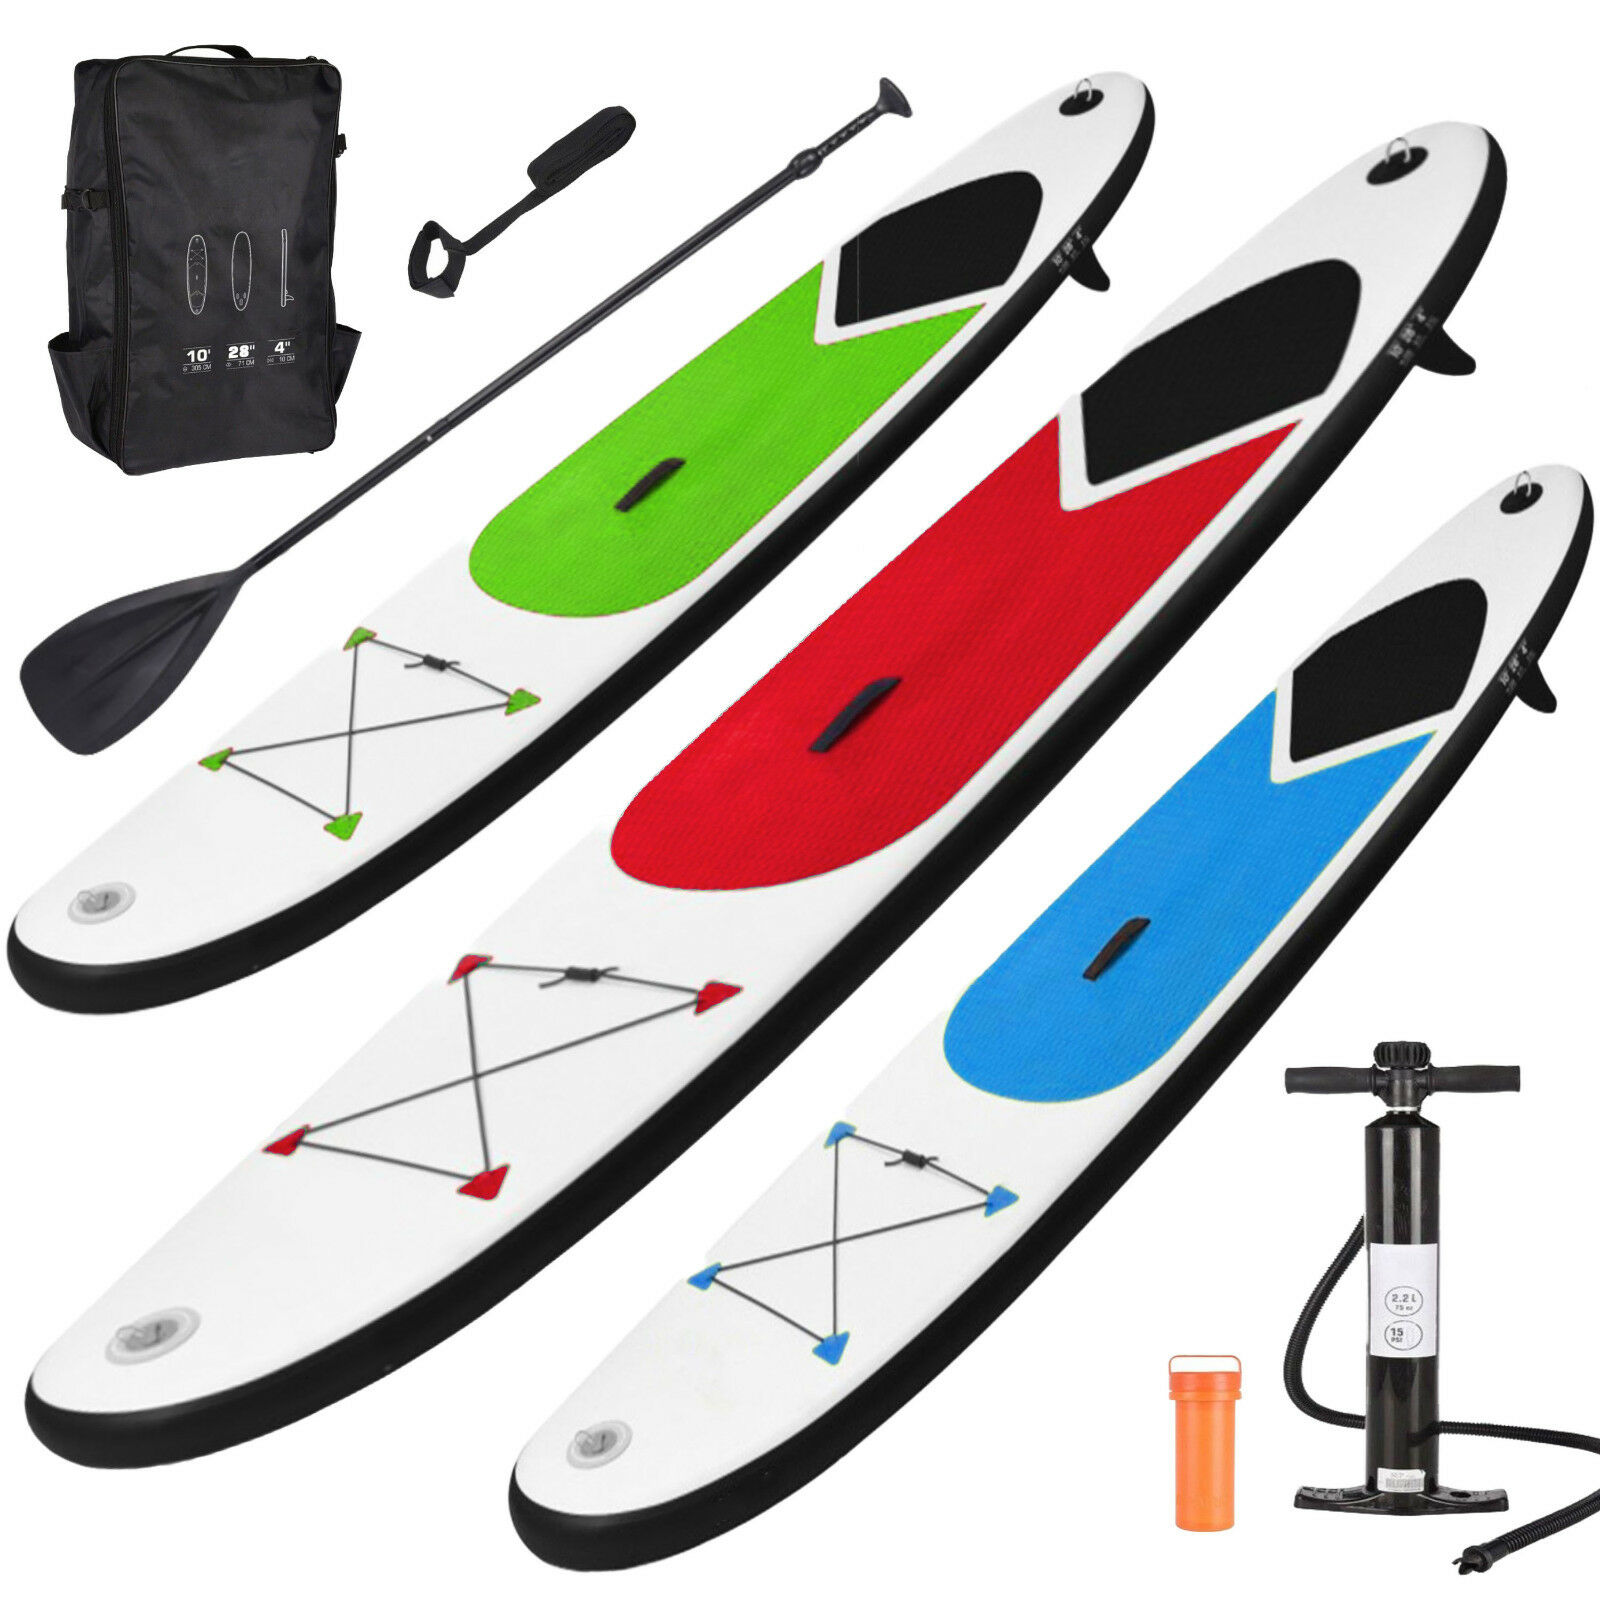 GEEZY Inflatable Stand Up Paddle Board 305cm SUP with Ankle Strap Pump Carry Bag